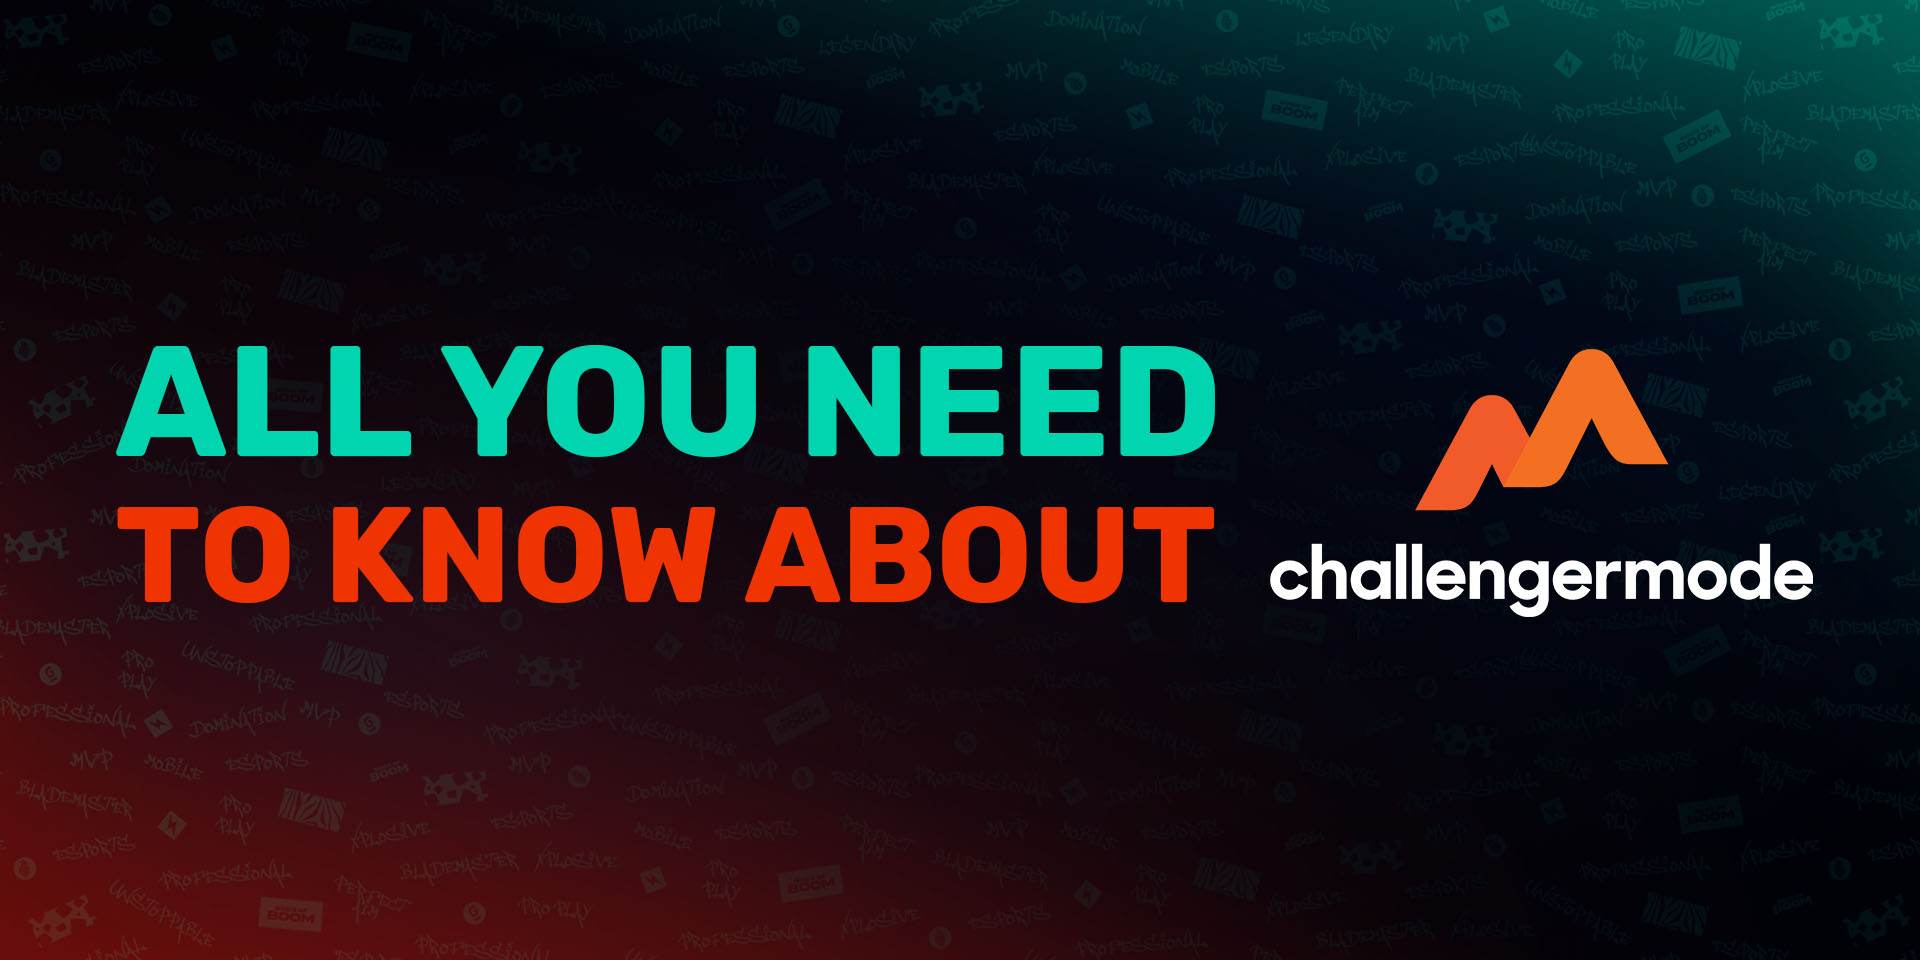 603f938c7b8a1_esports-challengermode-newlogo_headers_All you need